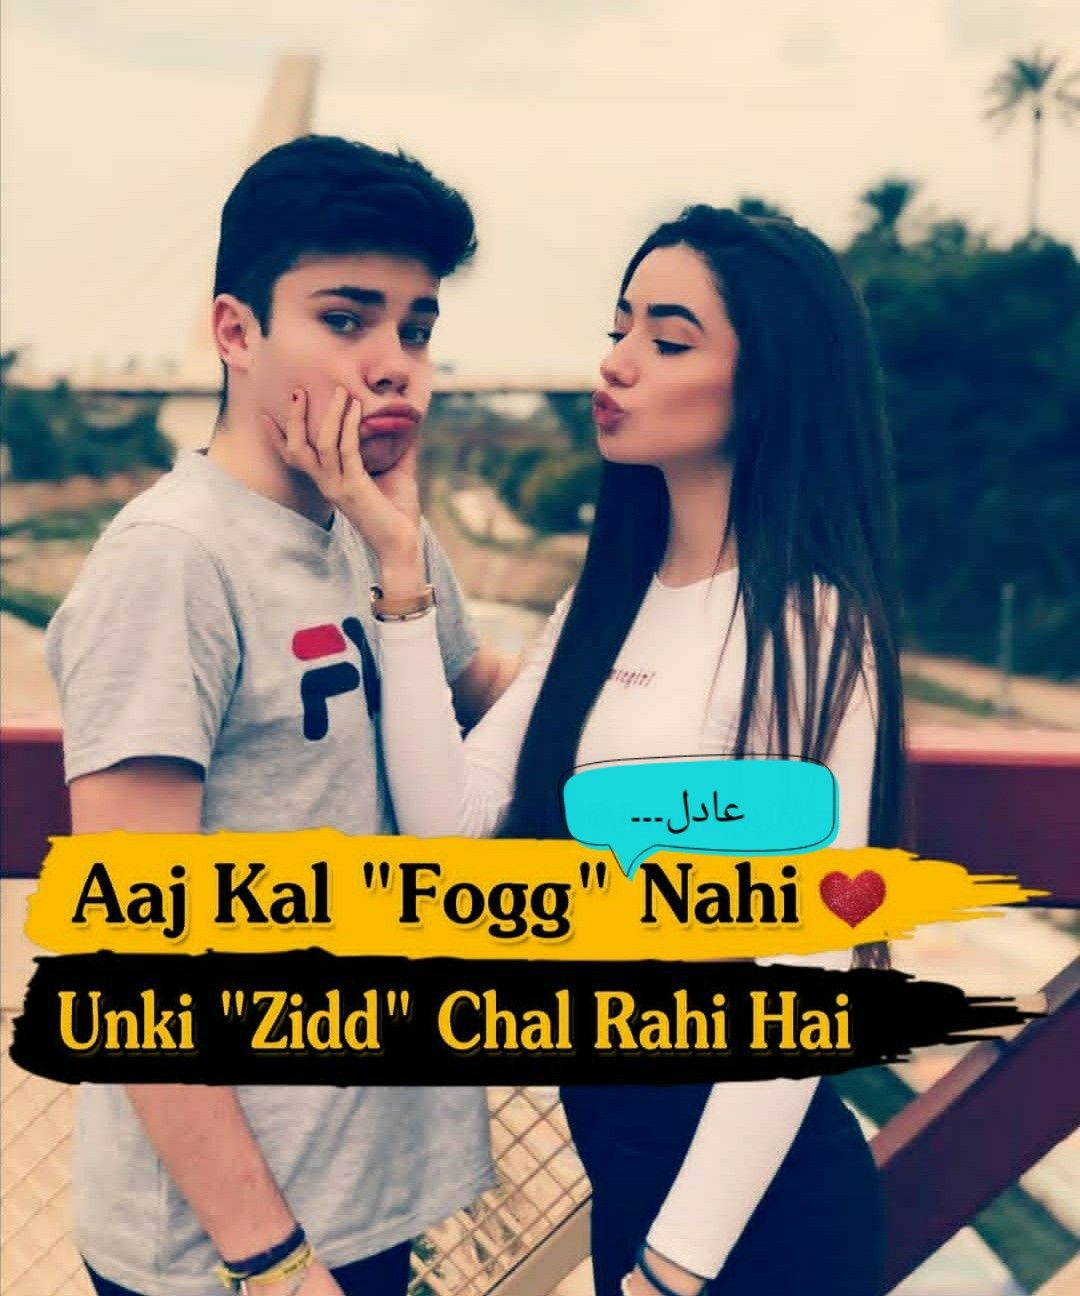 Pin by Nishu ... ️ on Cute love quotes in 2020 | Cute love ...